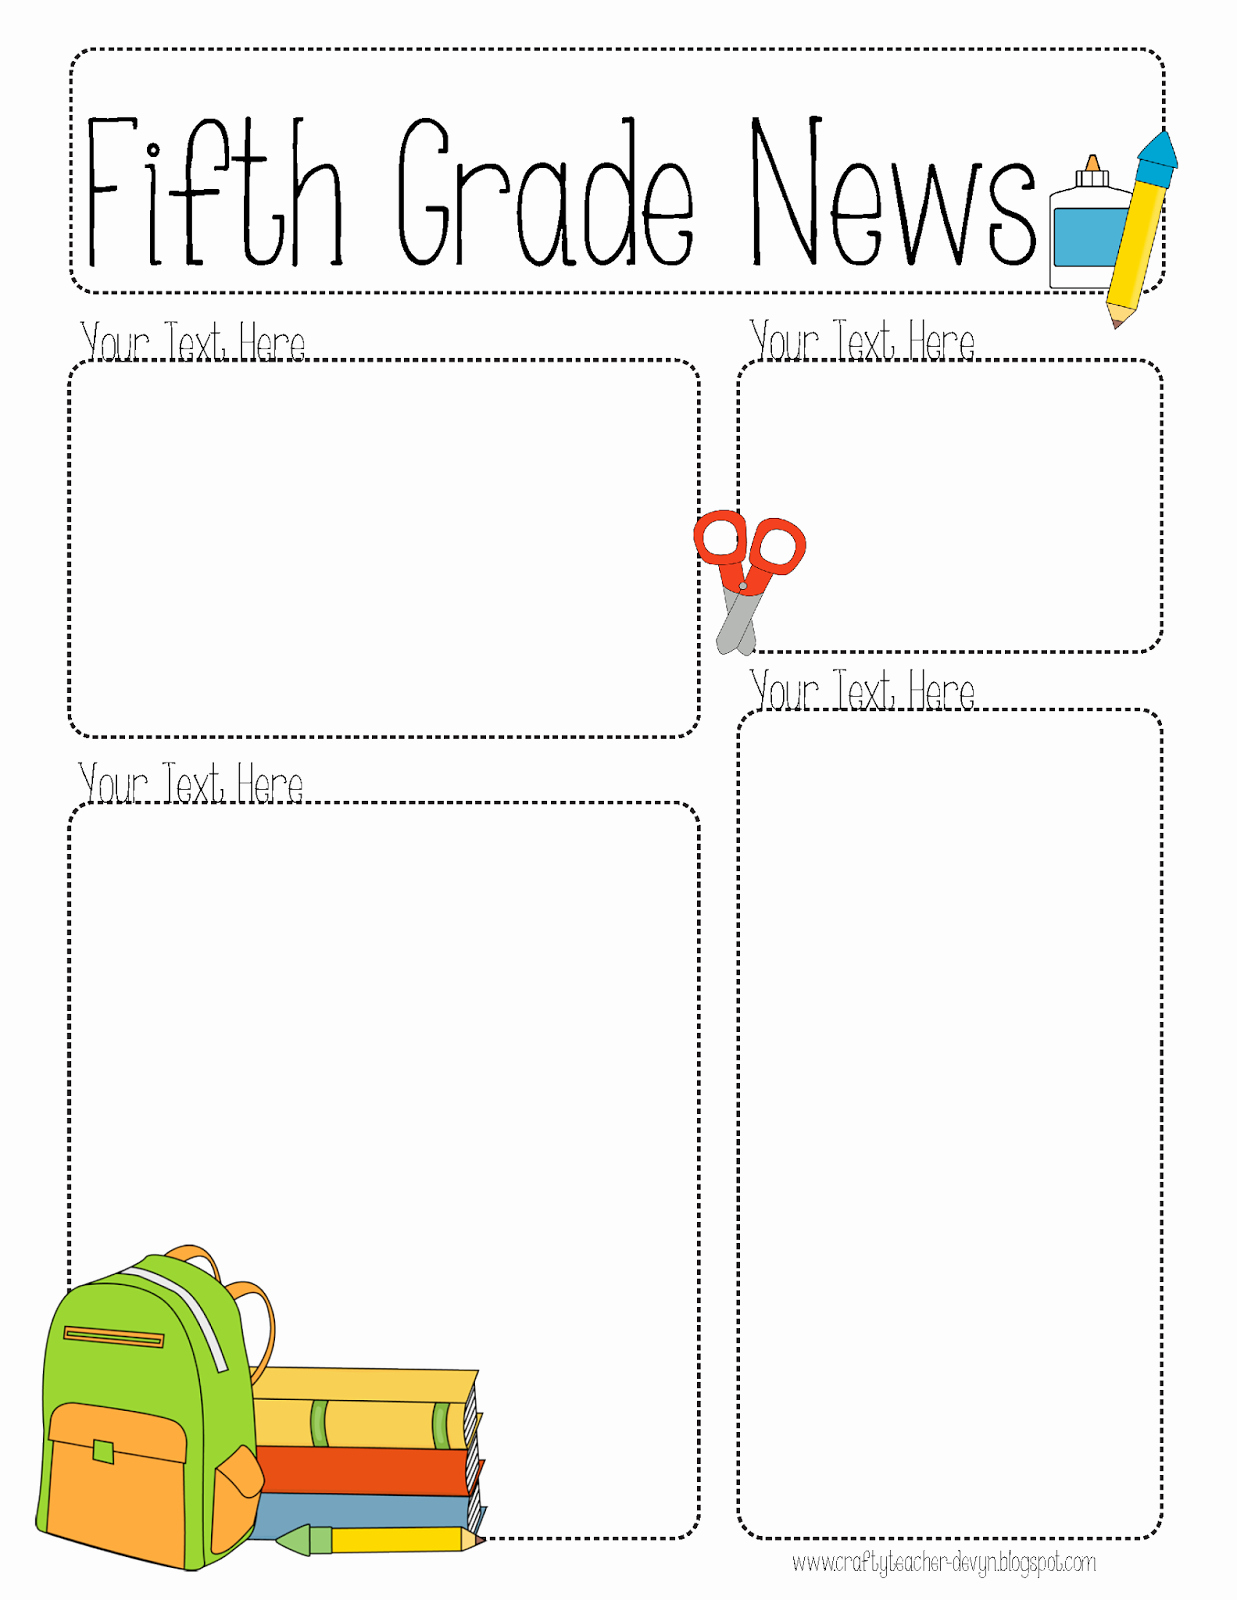 Free Newsletter Templates for Teachers Unique Pletely Editable Newsletter for All Grades